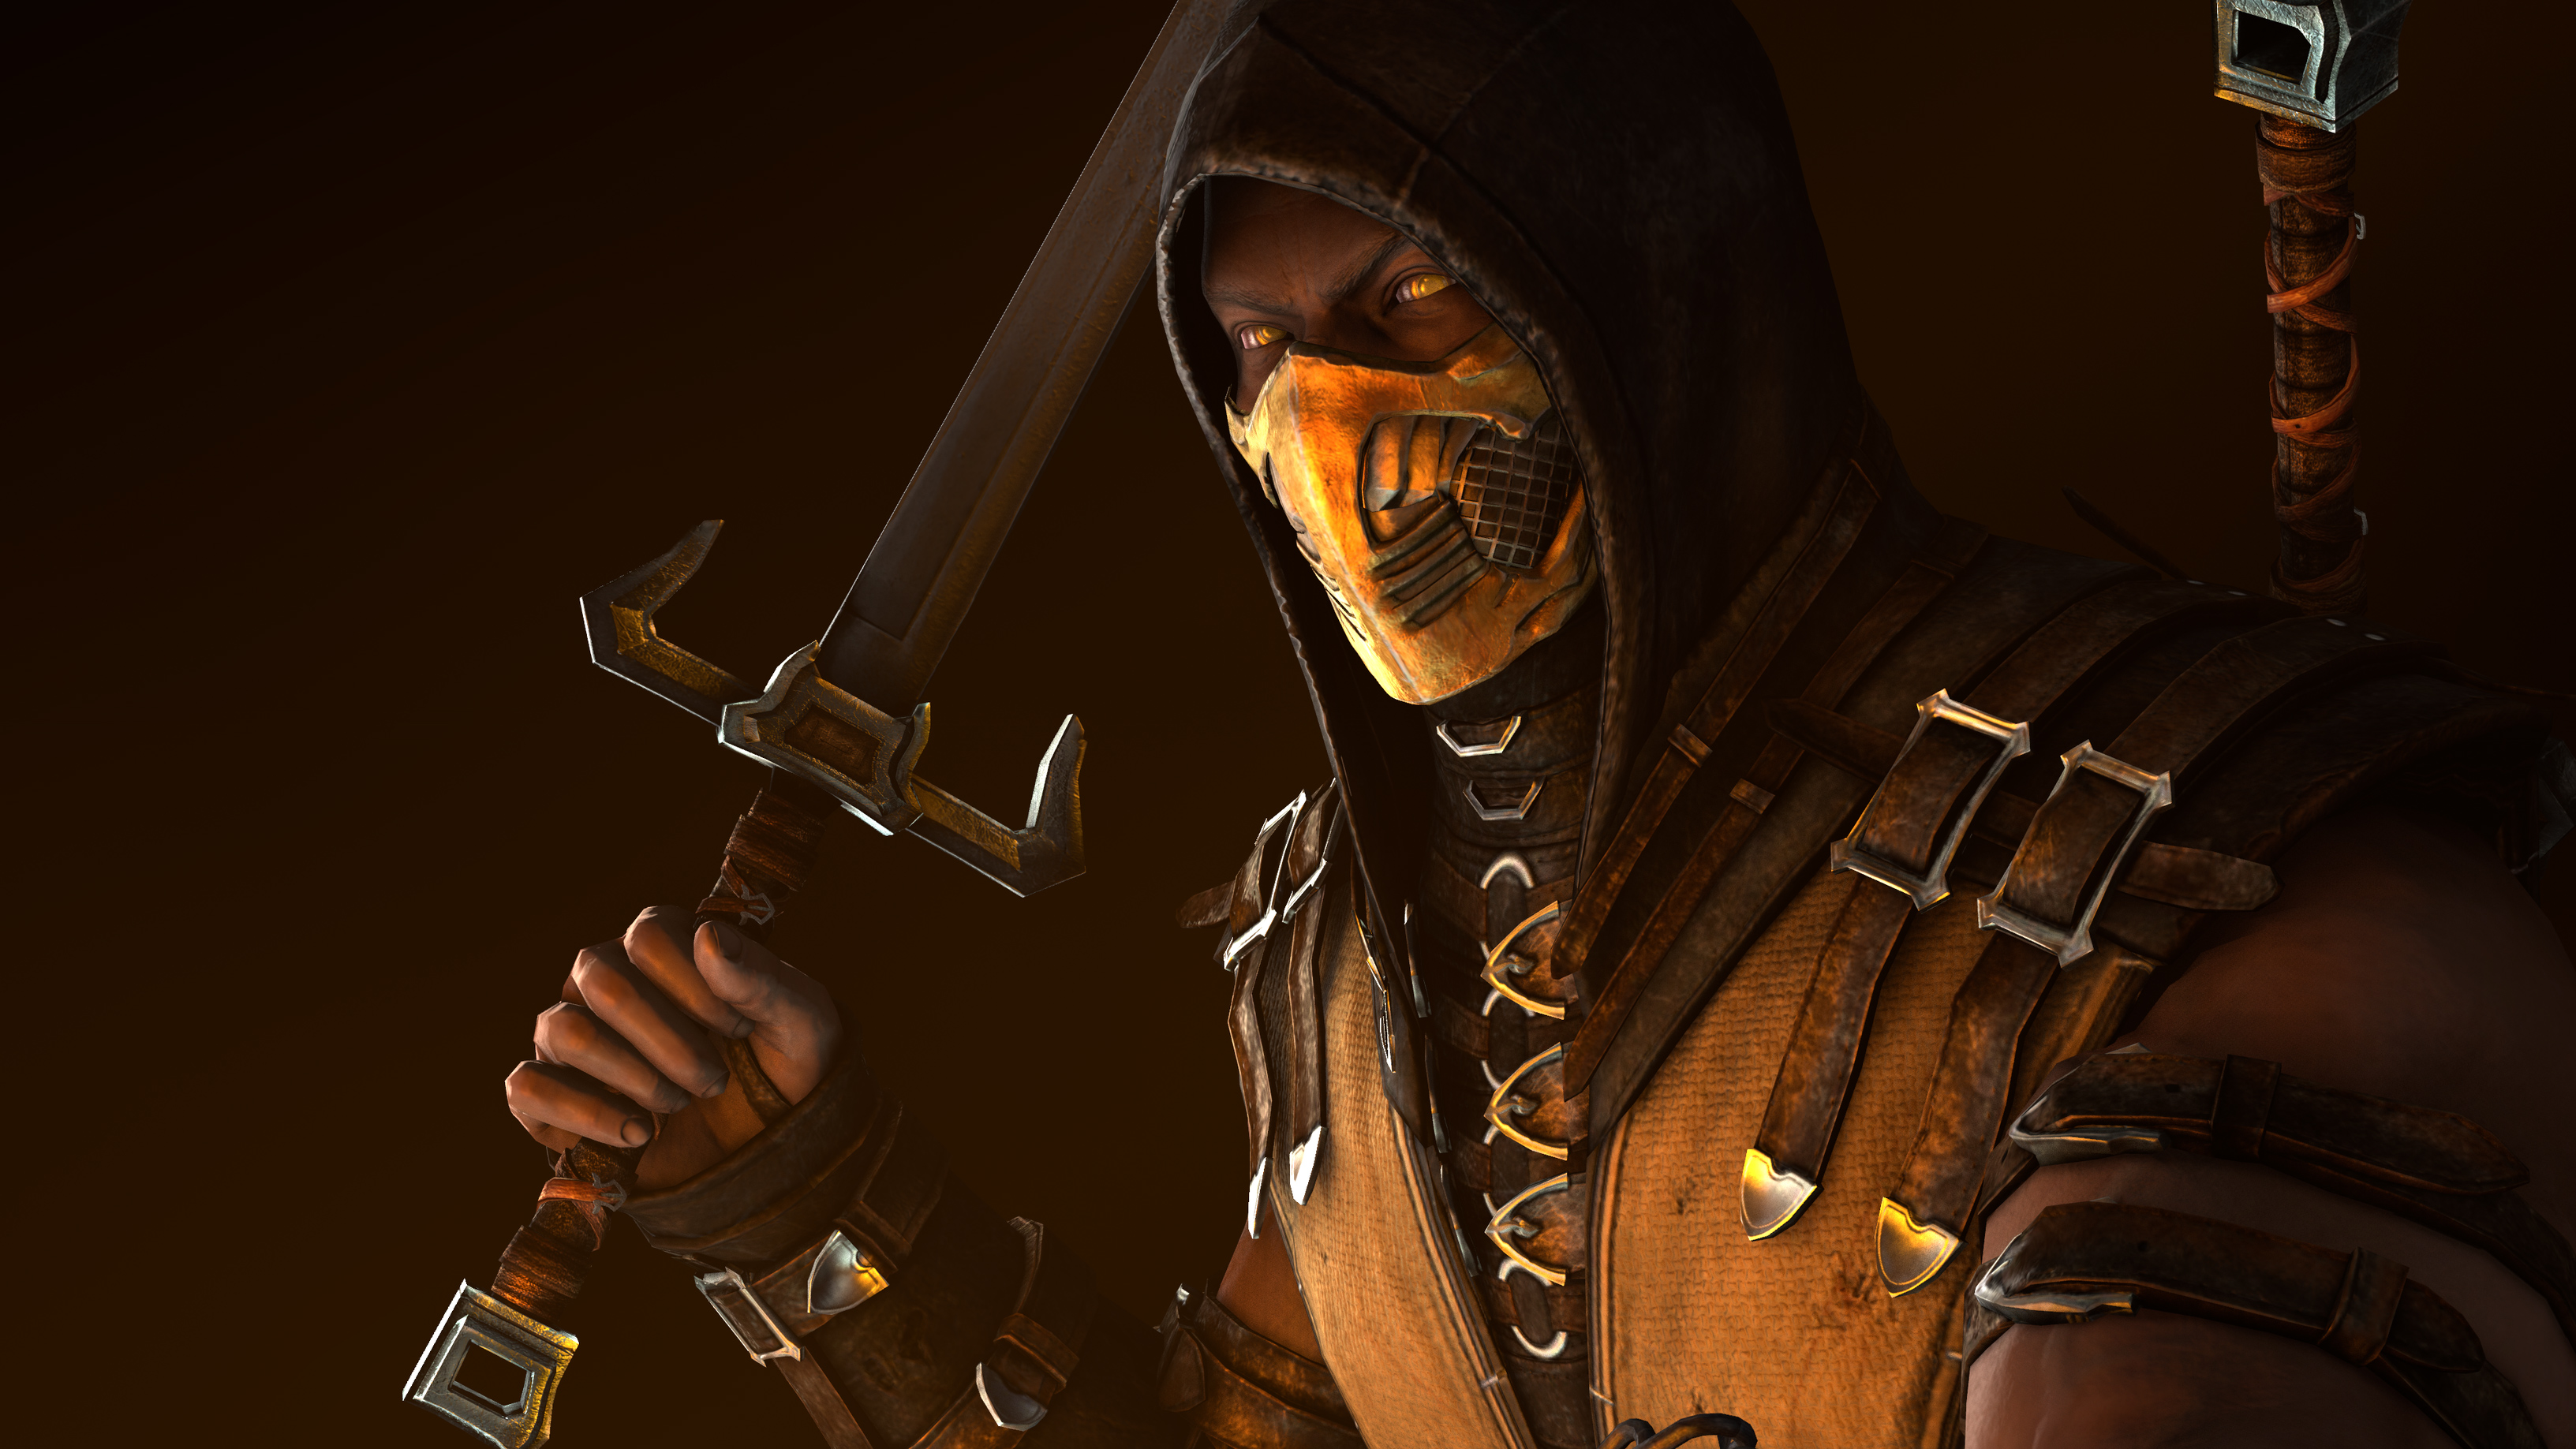 The Ninja From Hell Hd Games 4k Wallpapers Images